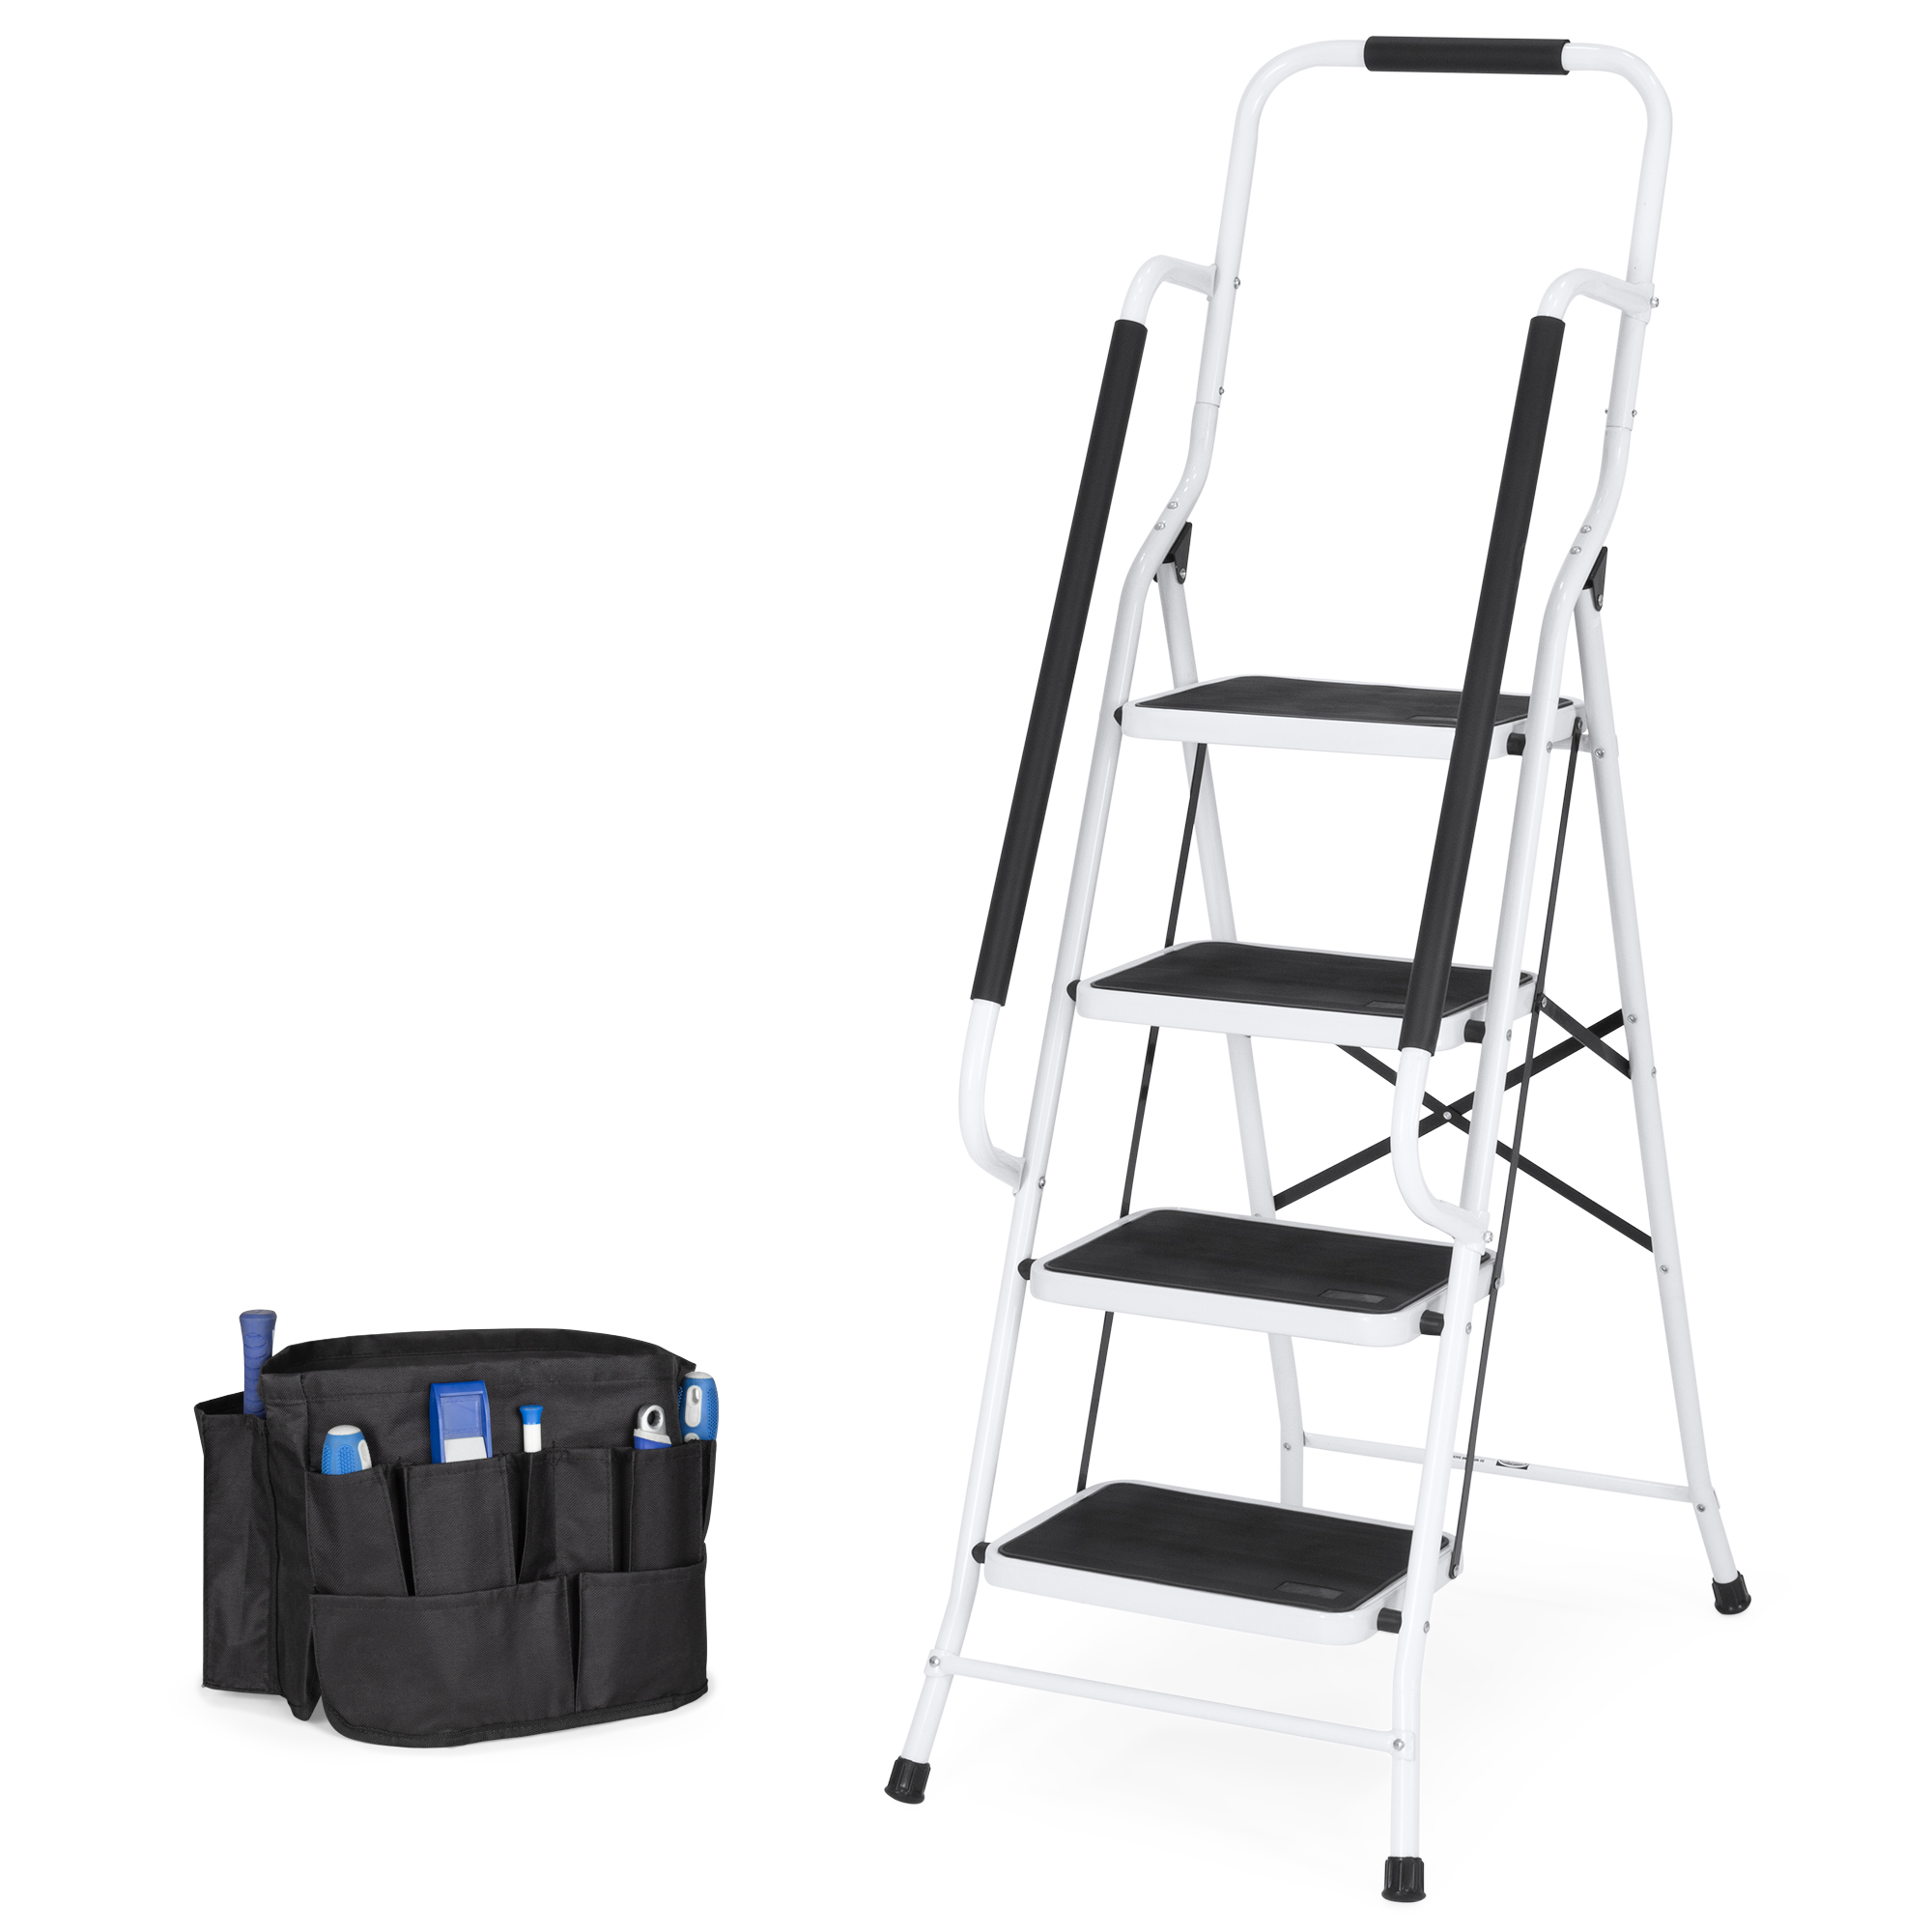 Best Choice Products 4-Step Portable Folding Anti-Slip Steel Safety Ladder w/ Padded Handrails, Attachable Tool Bag, Knee Rest - White